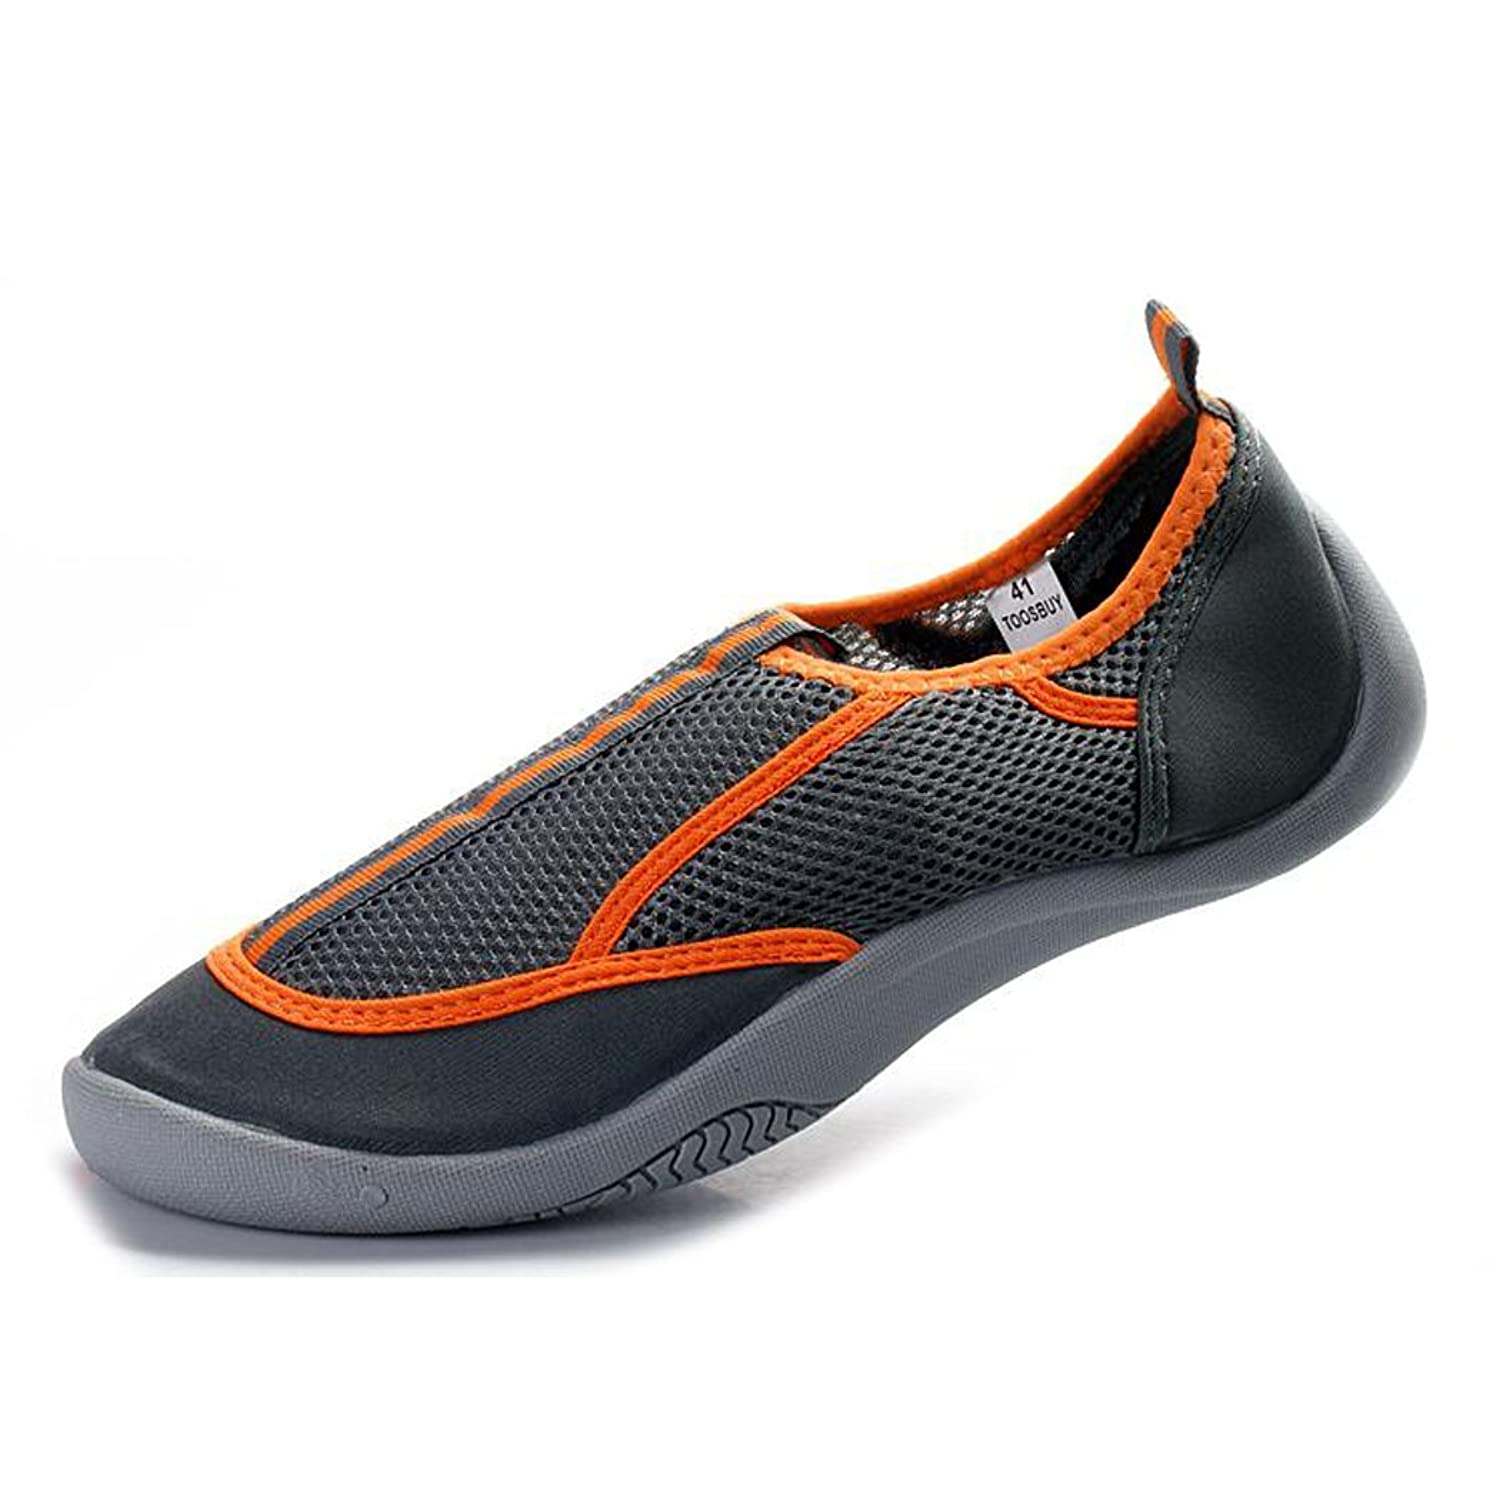 adi Women& Men's Water shoes,Driver Shoes,Sneakers,Slip-on